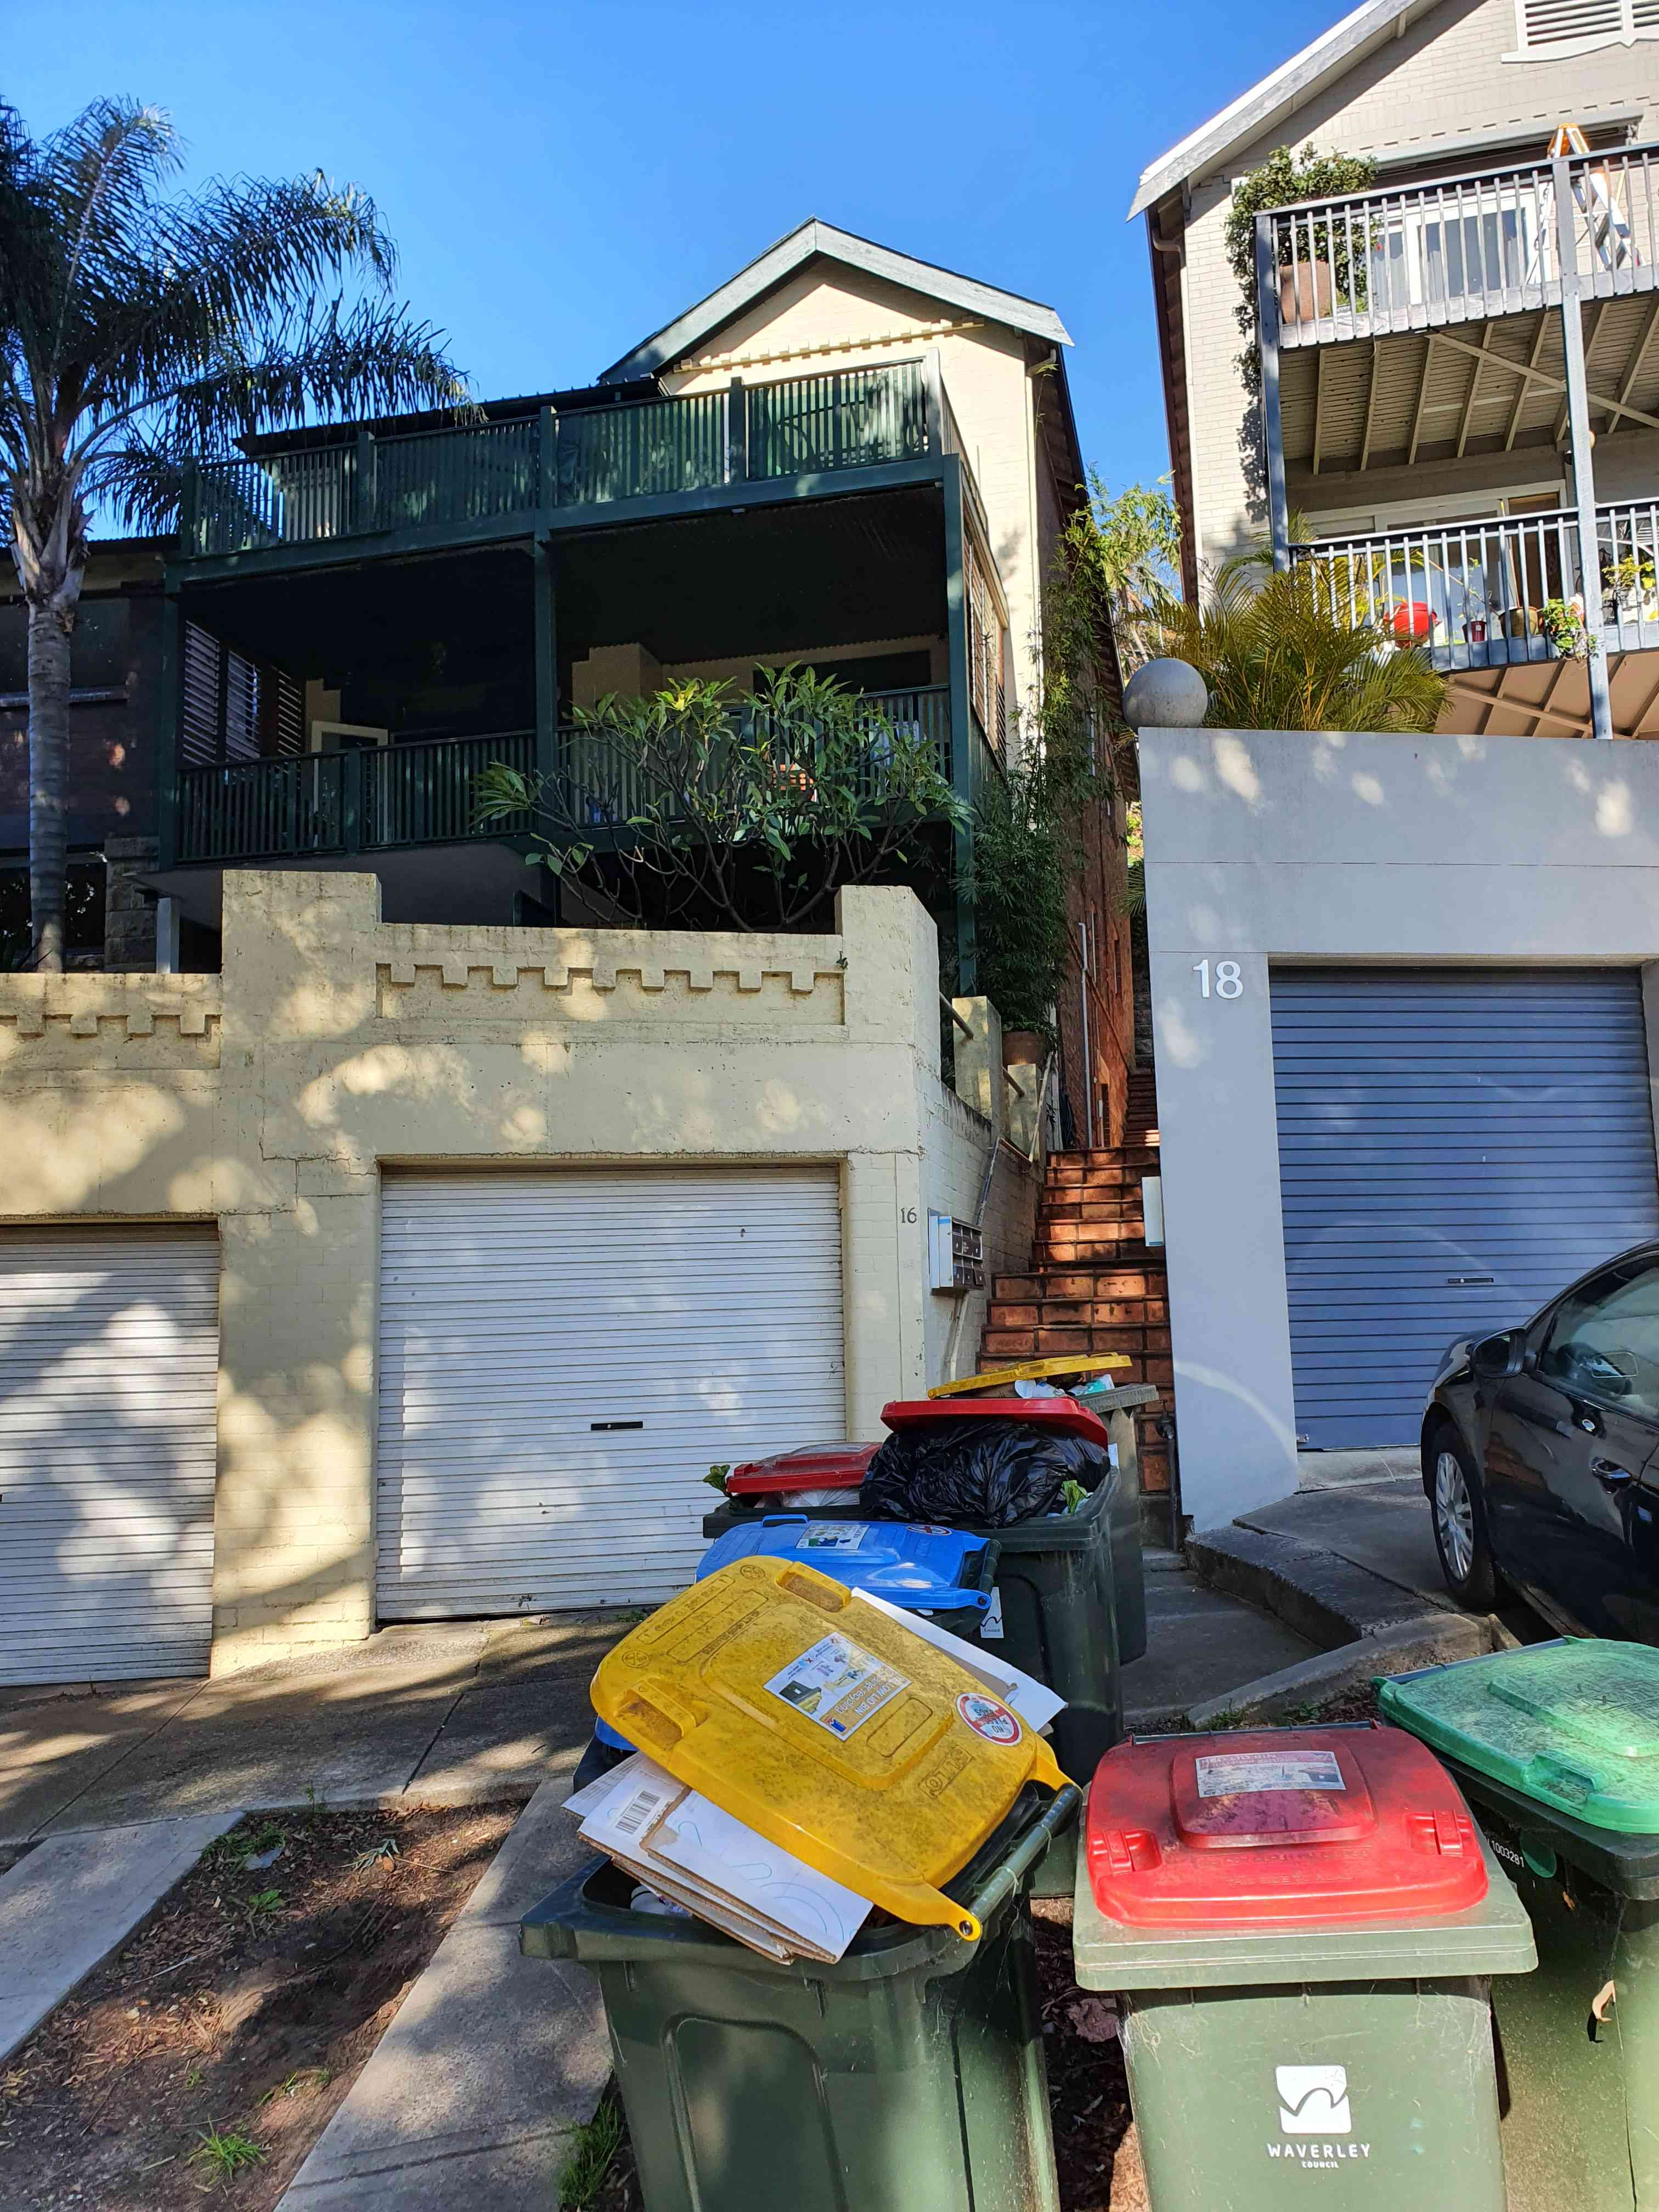 Oven Ignition Button Repairs at Bondi Beach NSW By Megger Electrical Services P/L via i4Tradies